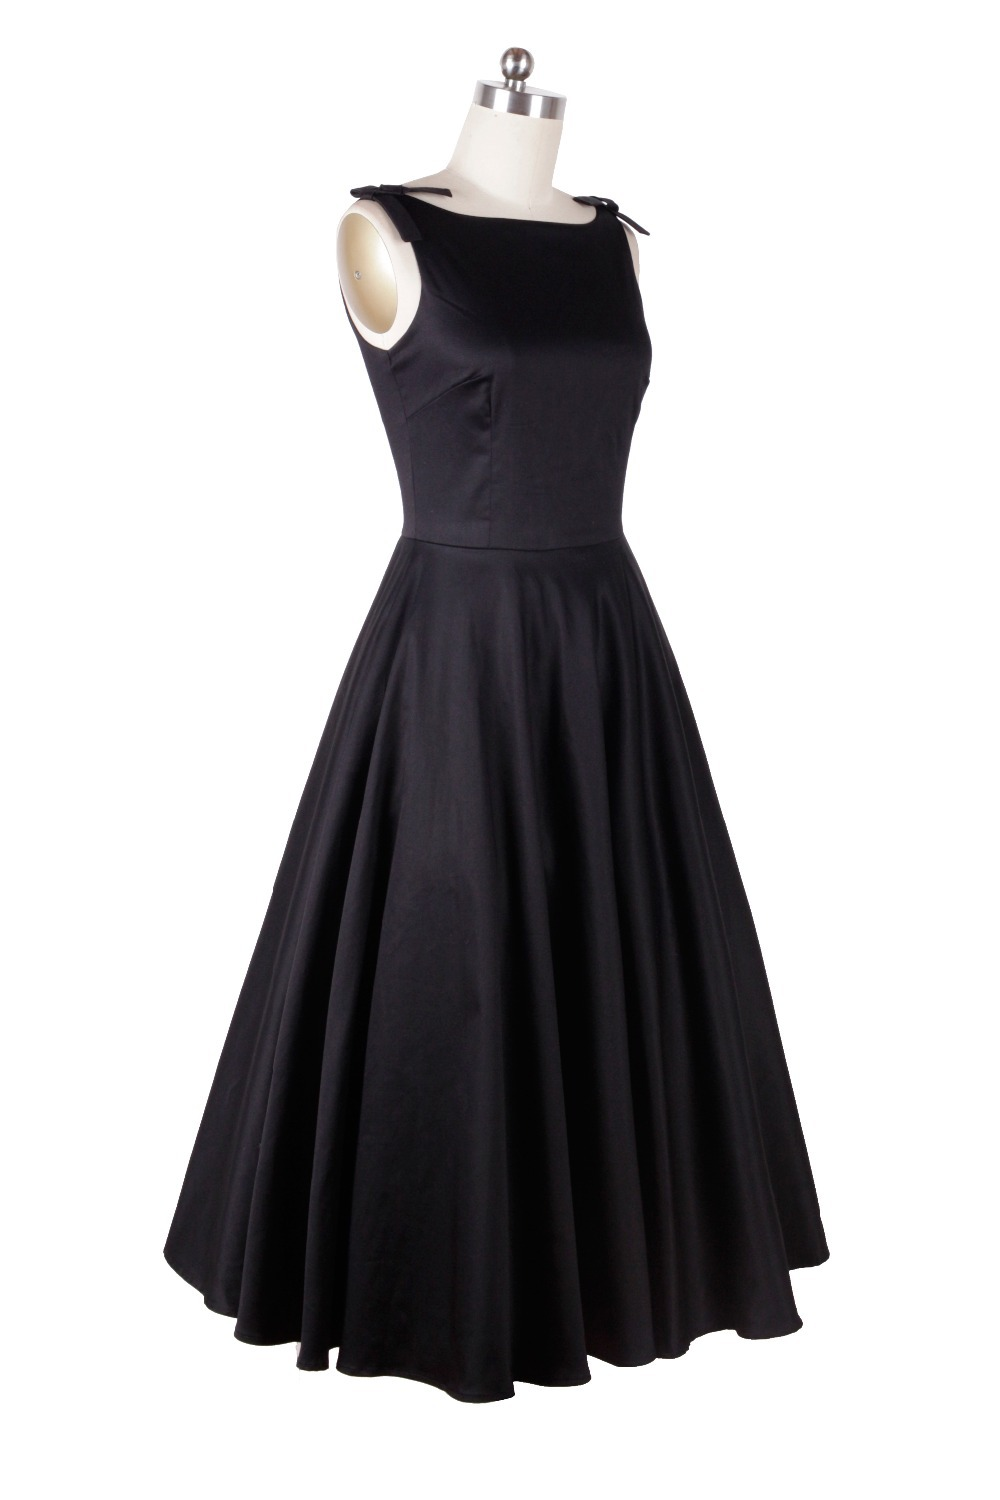 Detail Feedback Questions about Audrey Hepburn vintage style 50s 60s dresses  little black tea length elegant casual dress women clothing free shipping  on ... e0e863ff1899